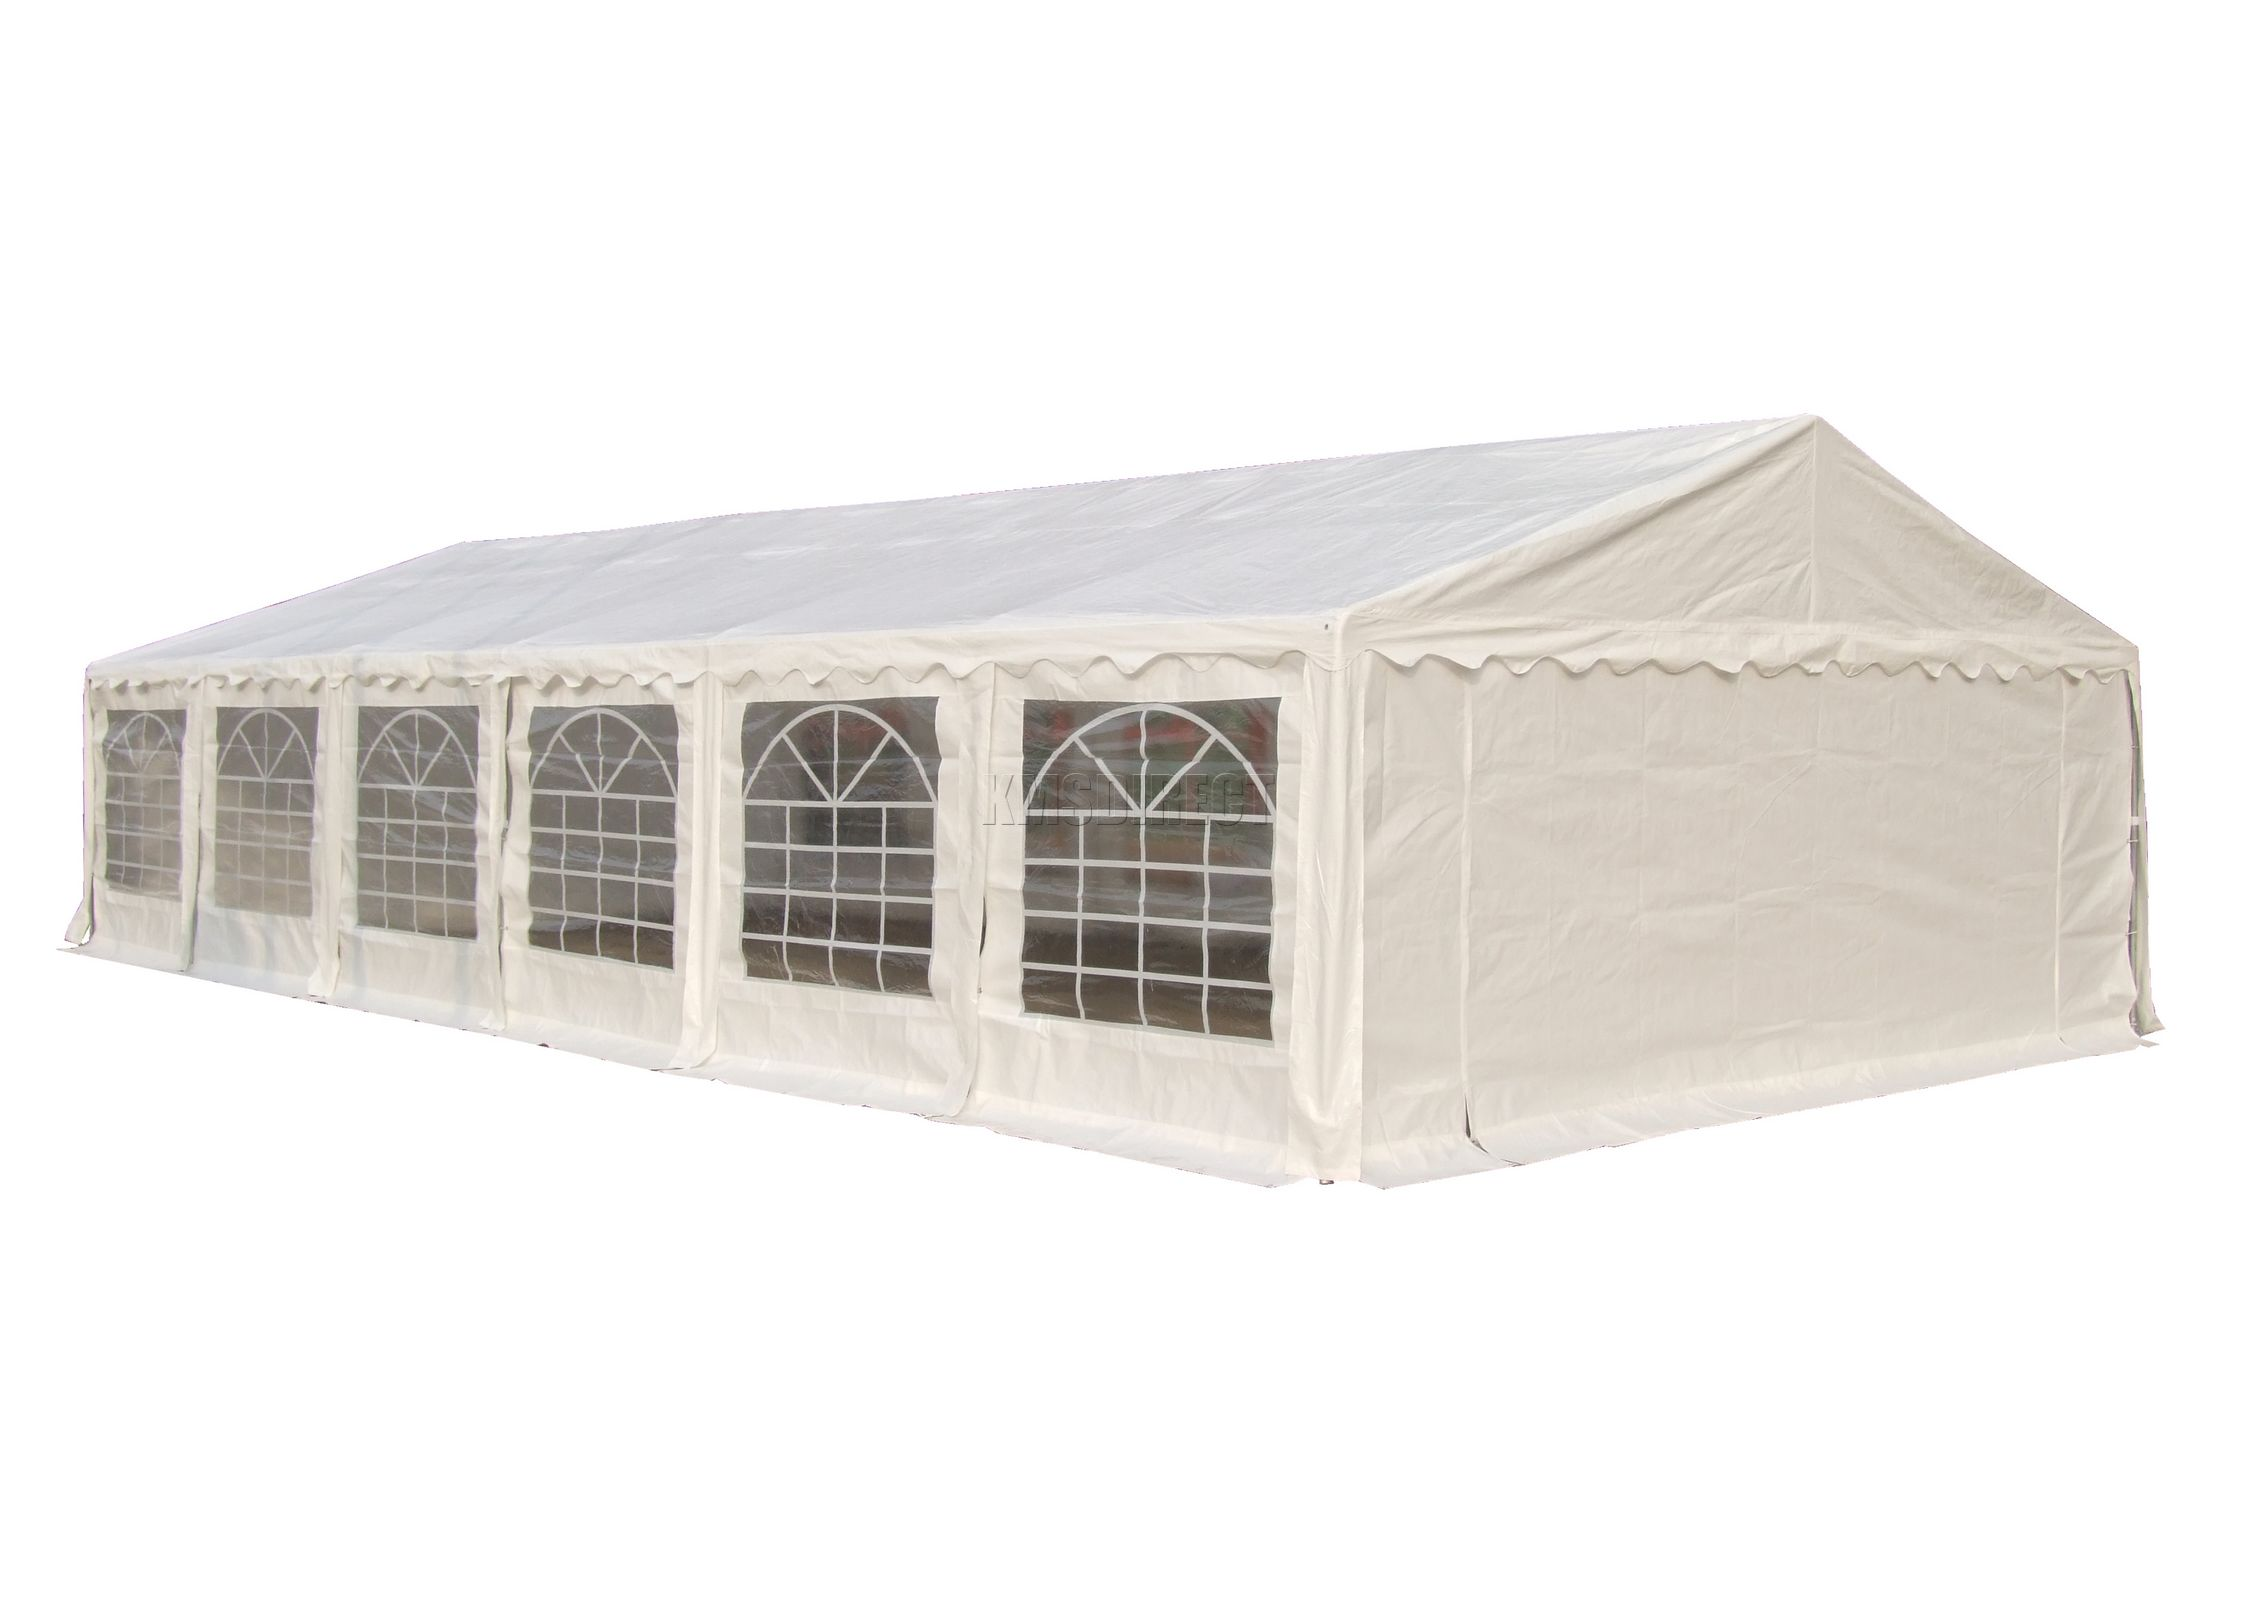 Dome Tent For Sale Partyzelt Strapazierf 228 Hig Markise Hochzeit Party Zelt 6m X